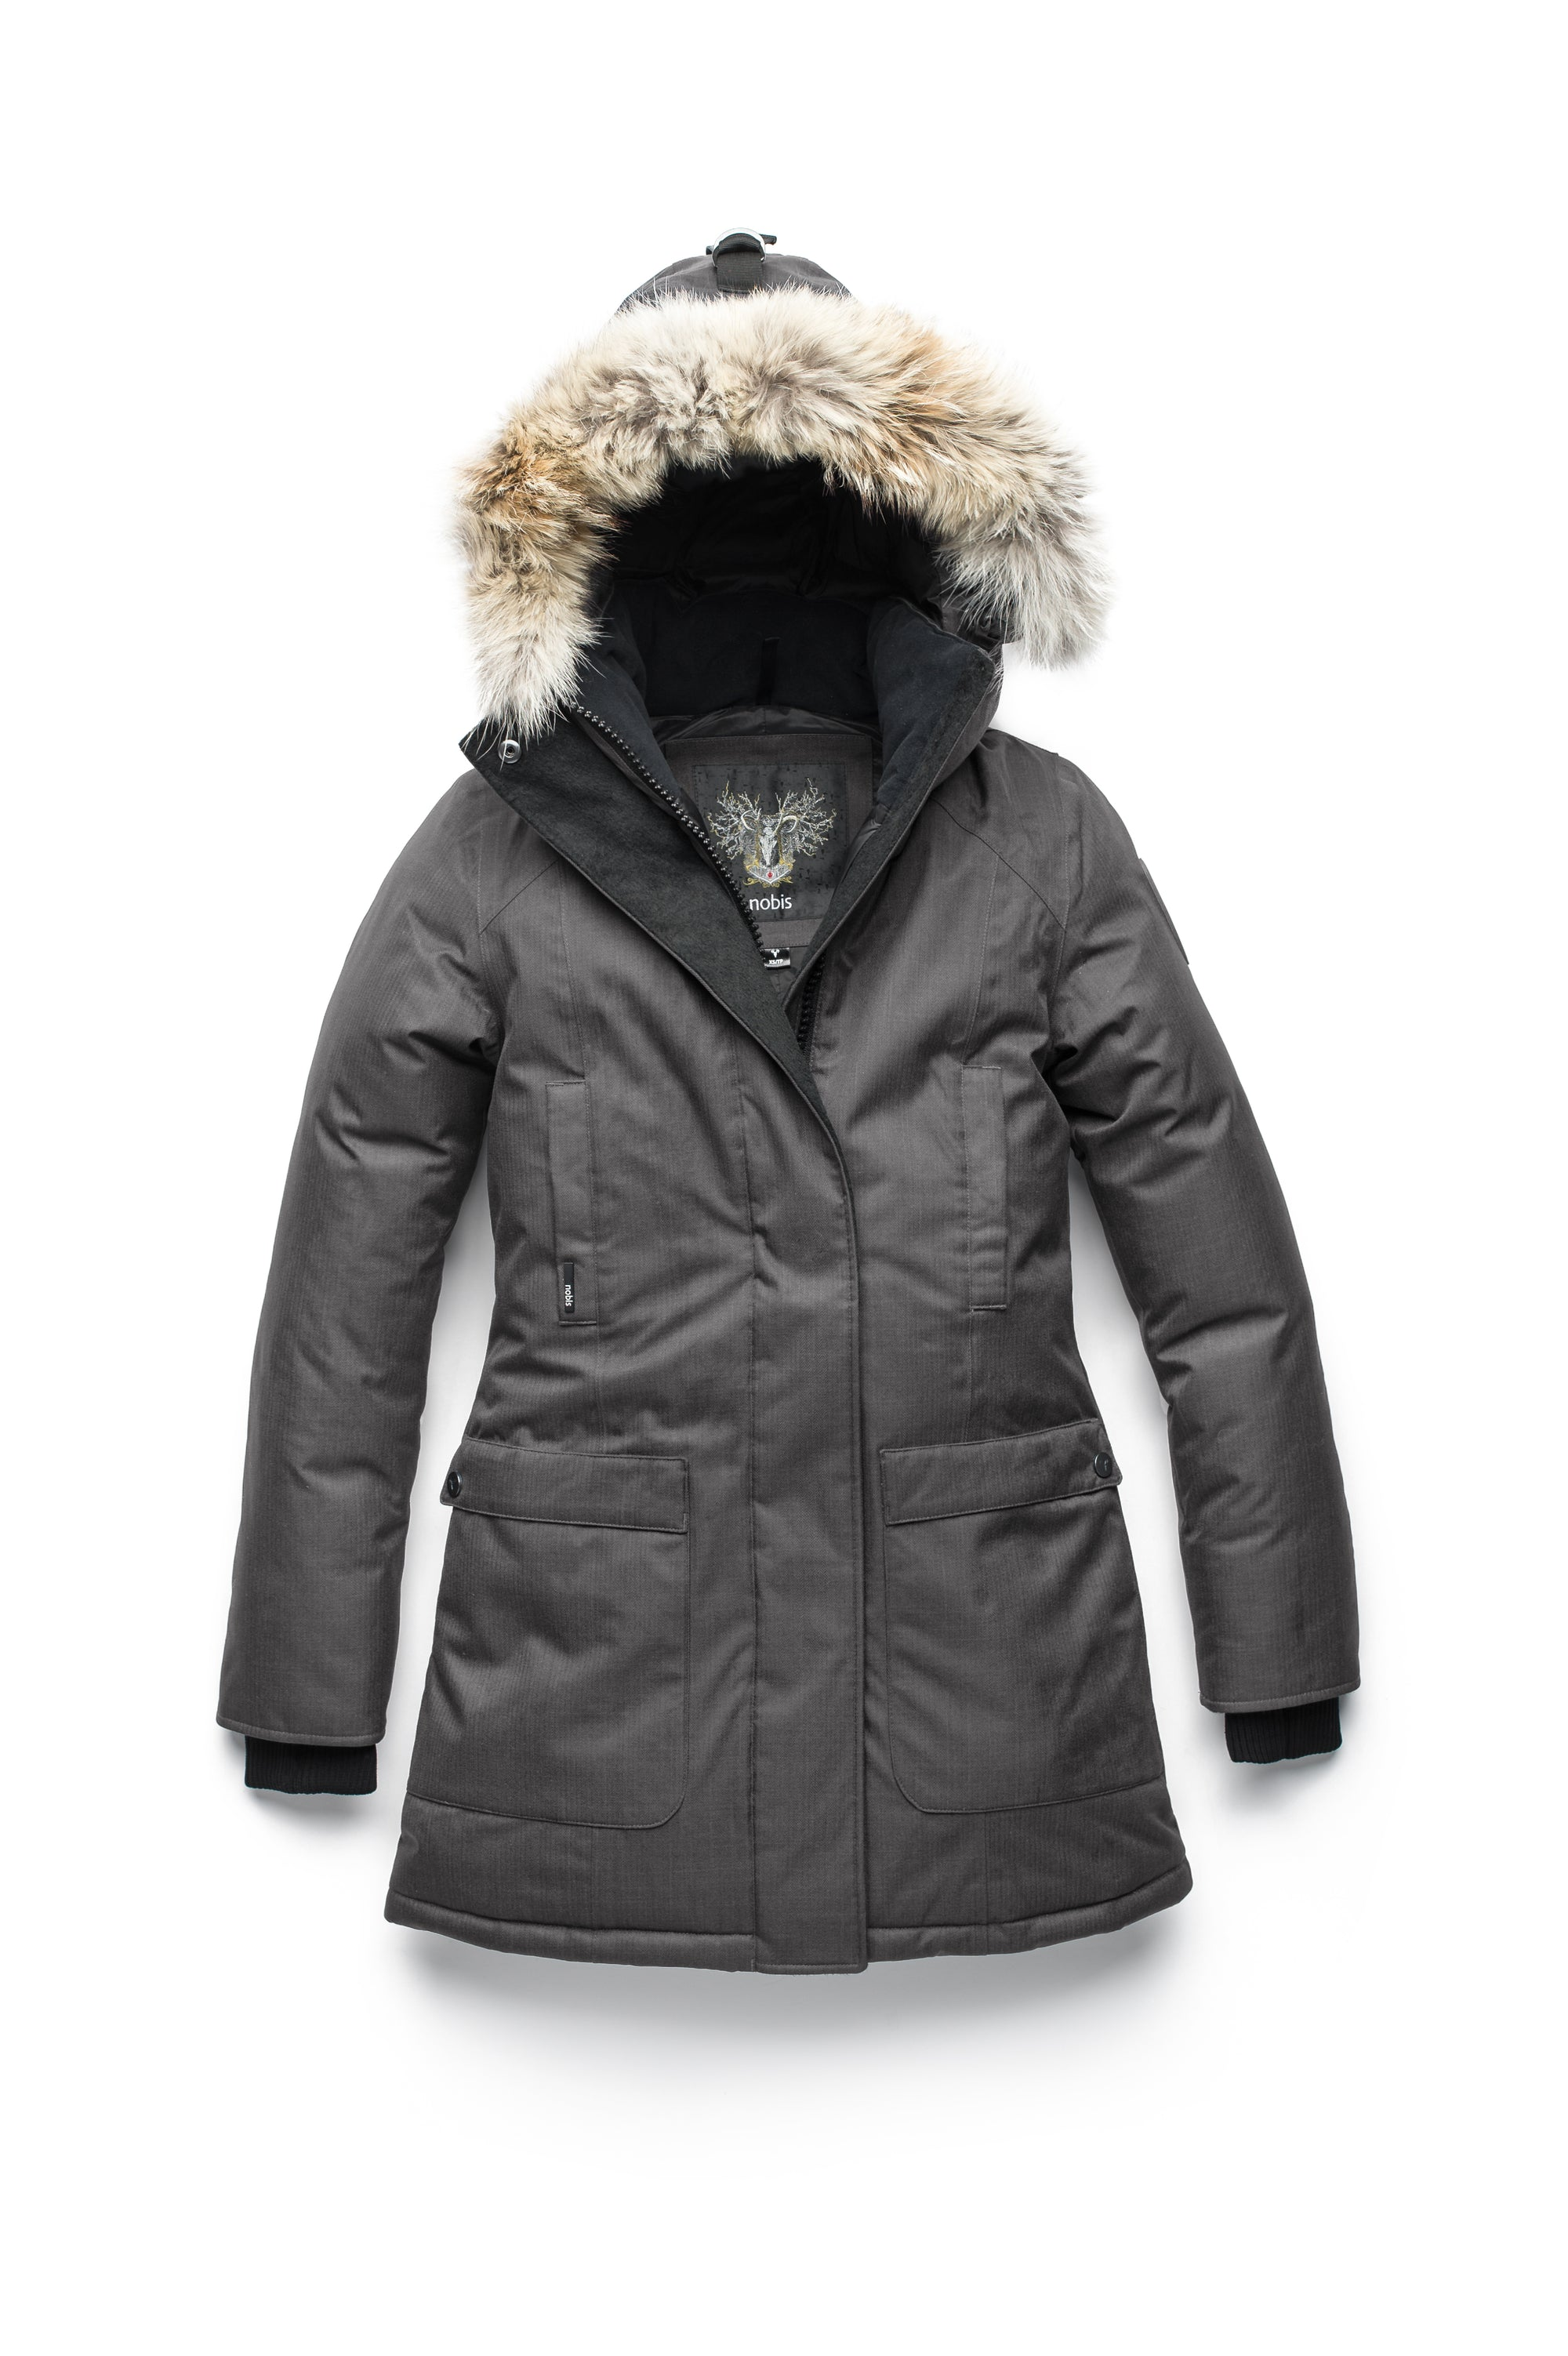 nobis-womens-carla-ladies-parka-jackets-crosshatch-steel-grey-main